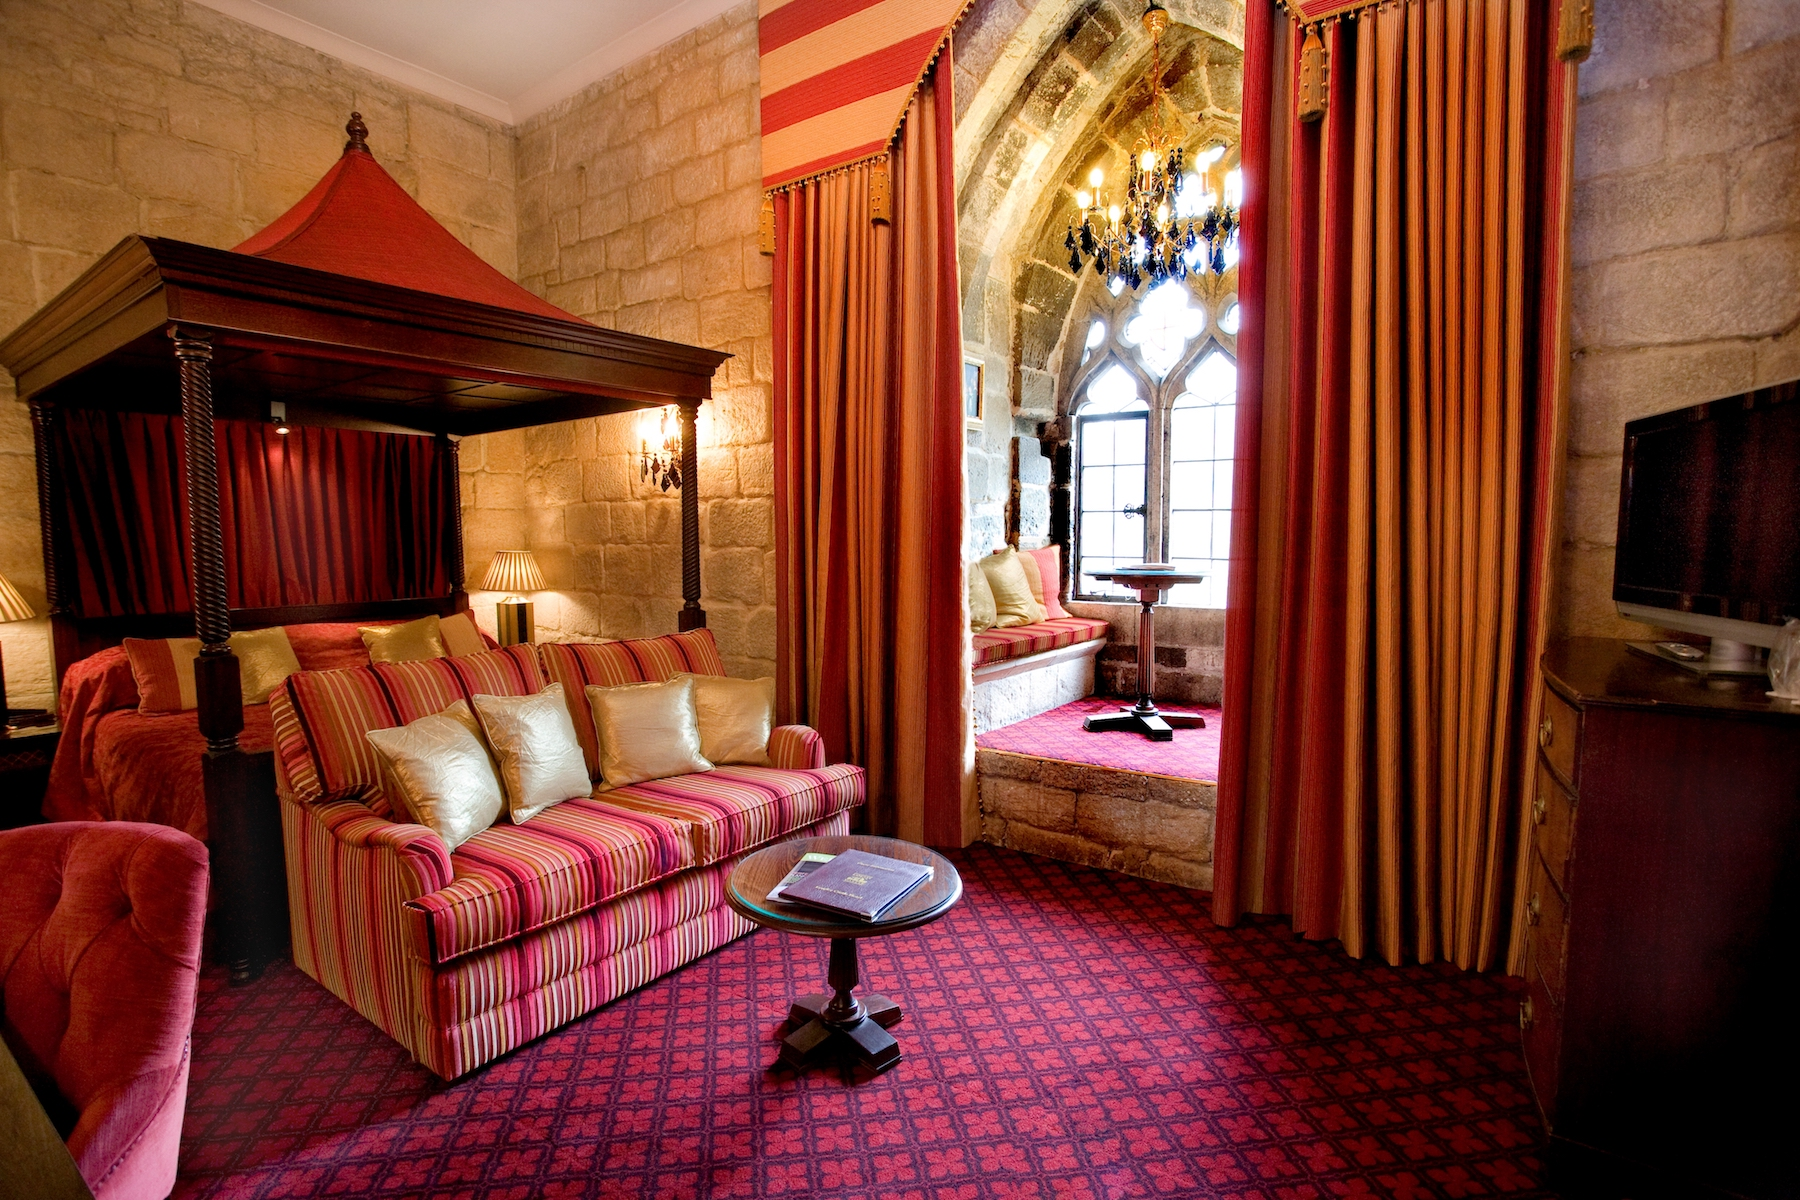 GREENWICH ROOM at LANGLEY CASTLE